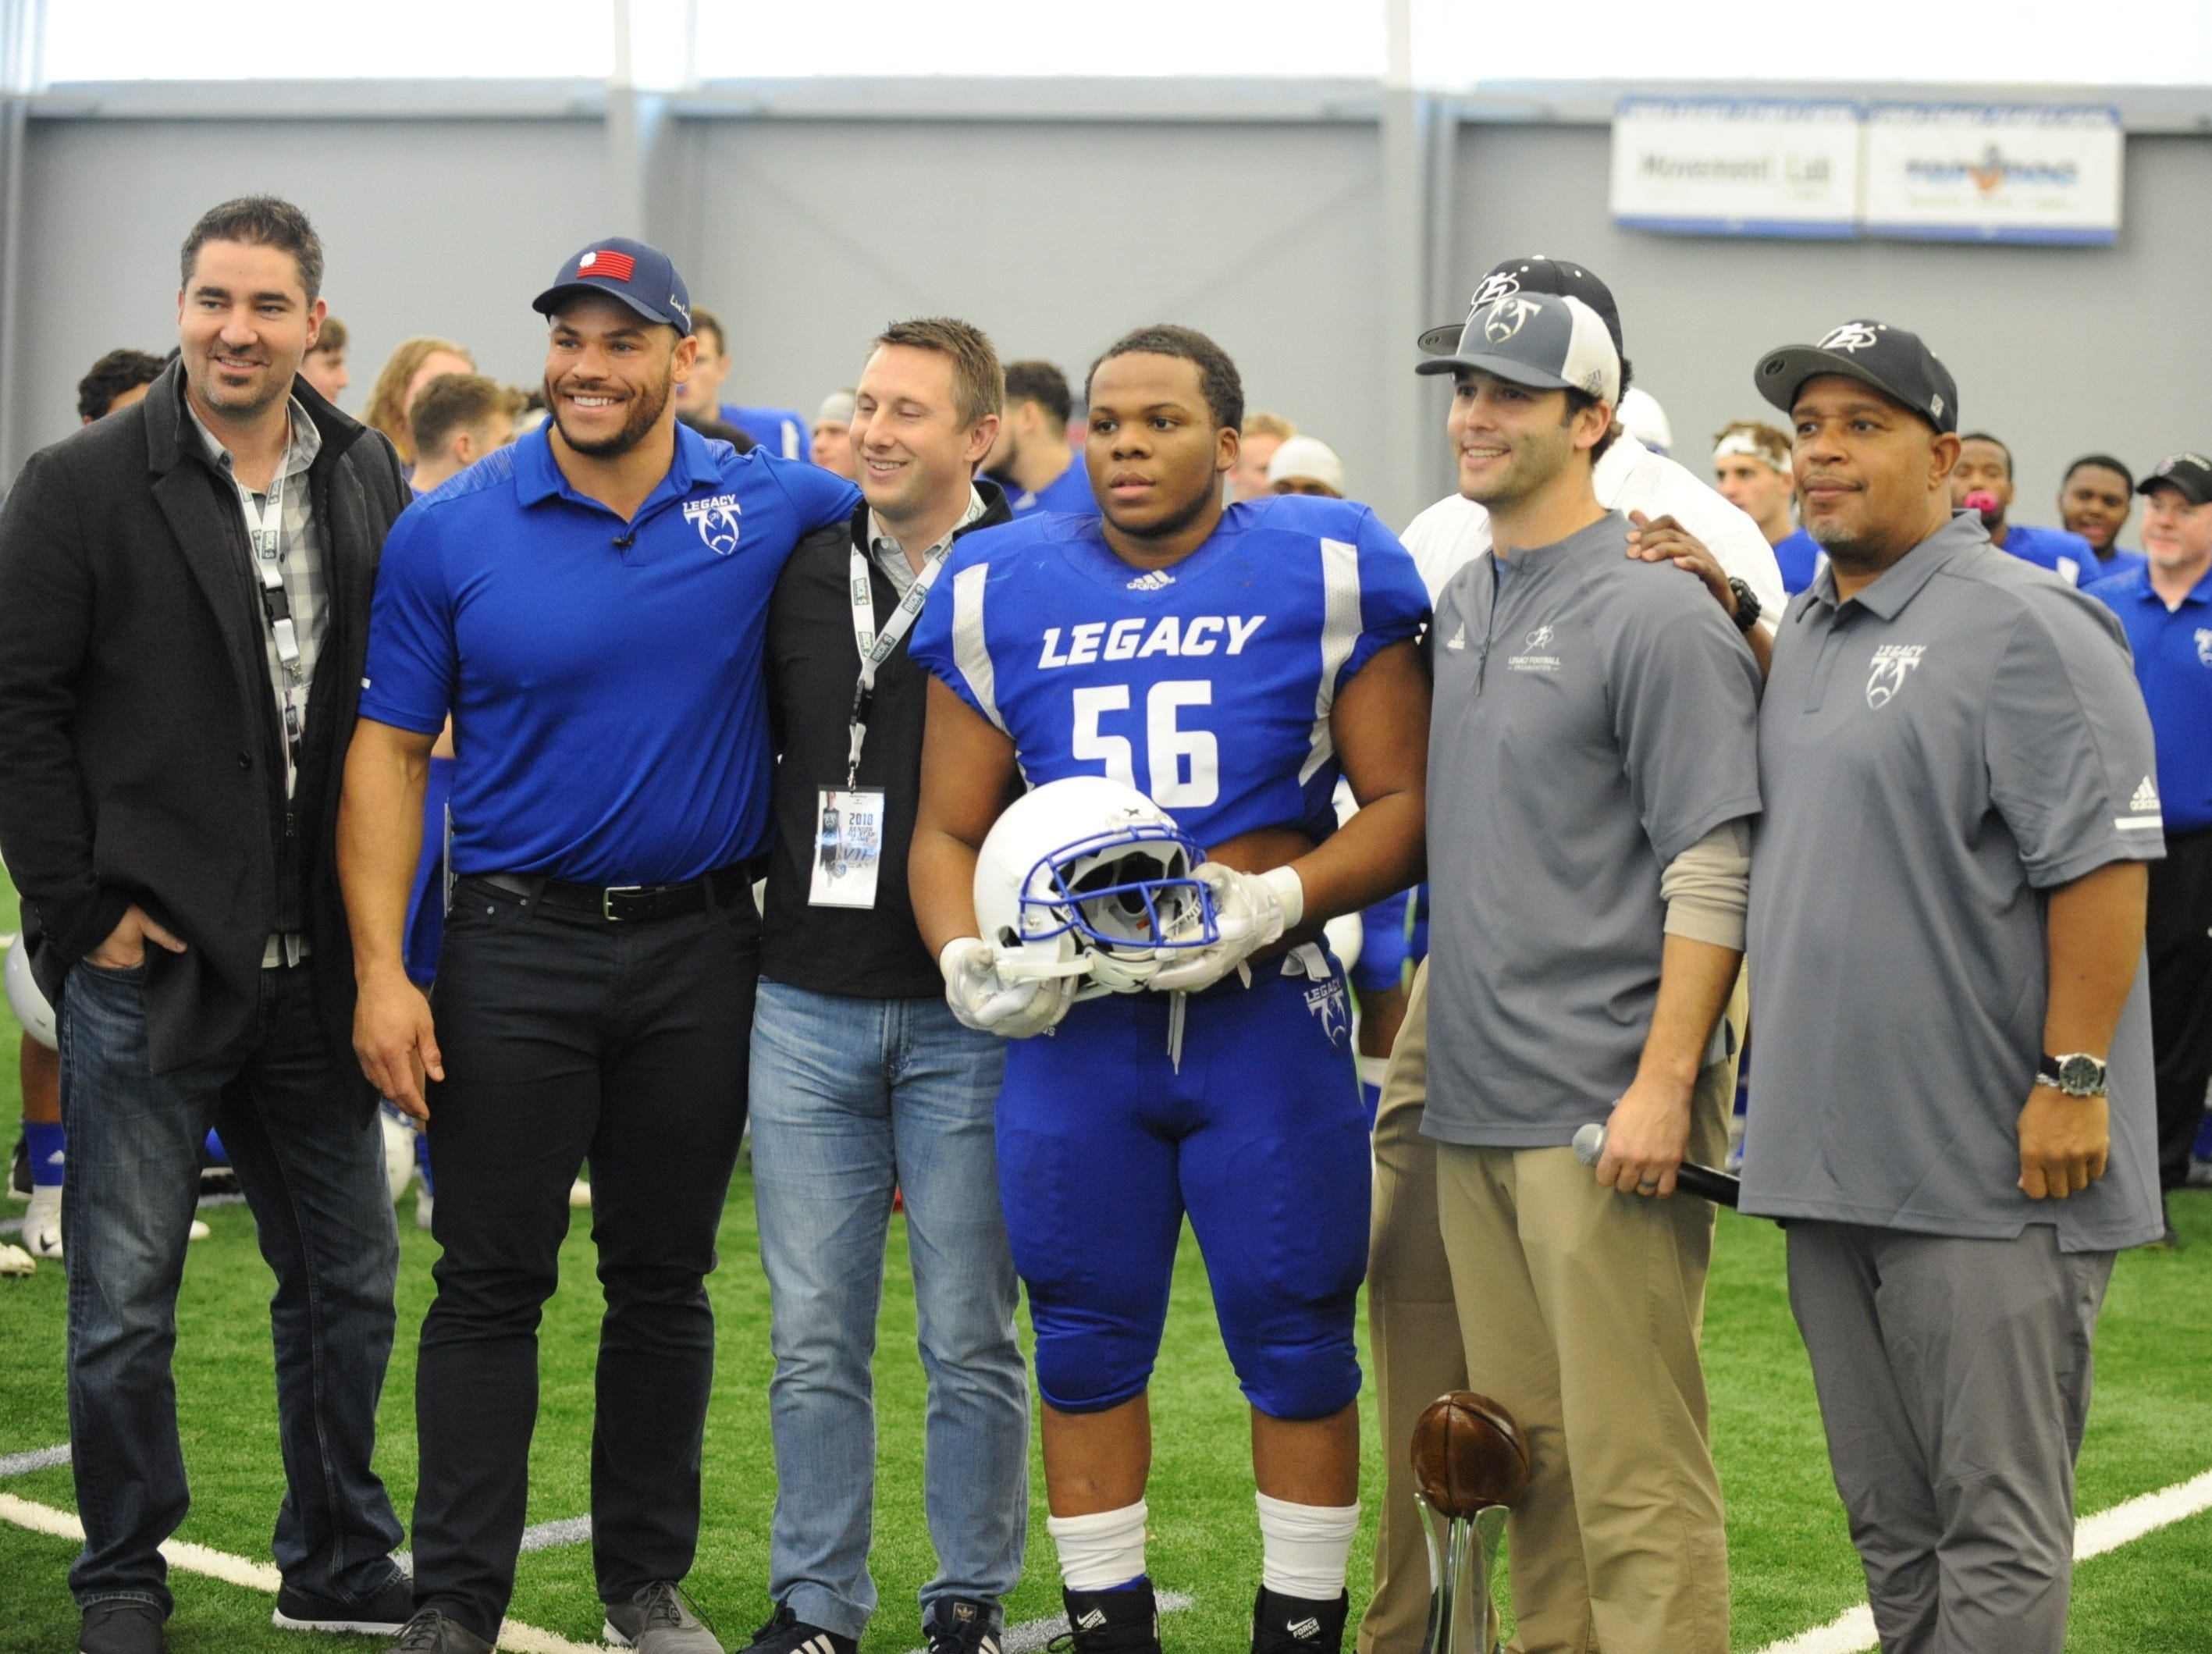 Team Legacy MVP Victor Nelson (56) of Detroit Central High School during postgame honors.